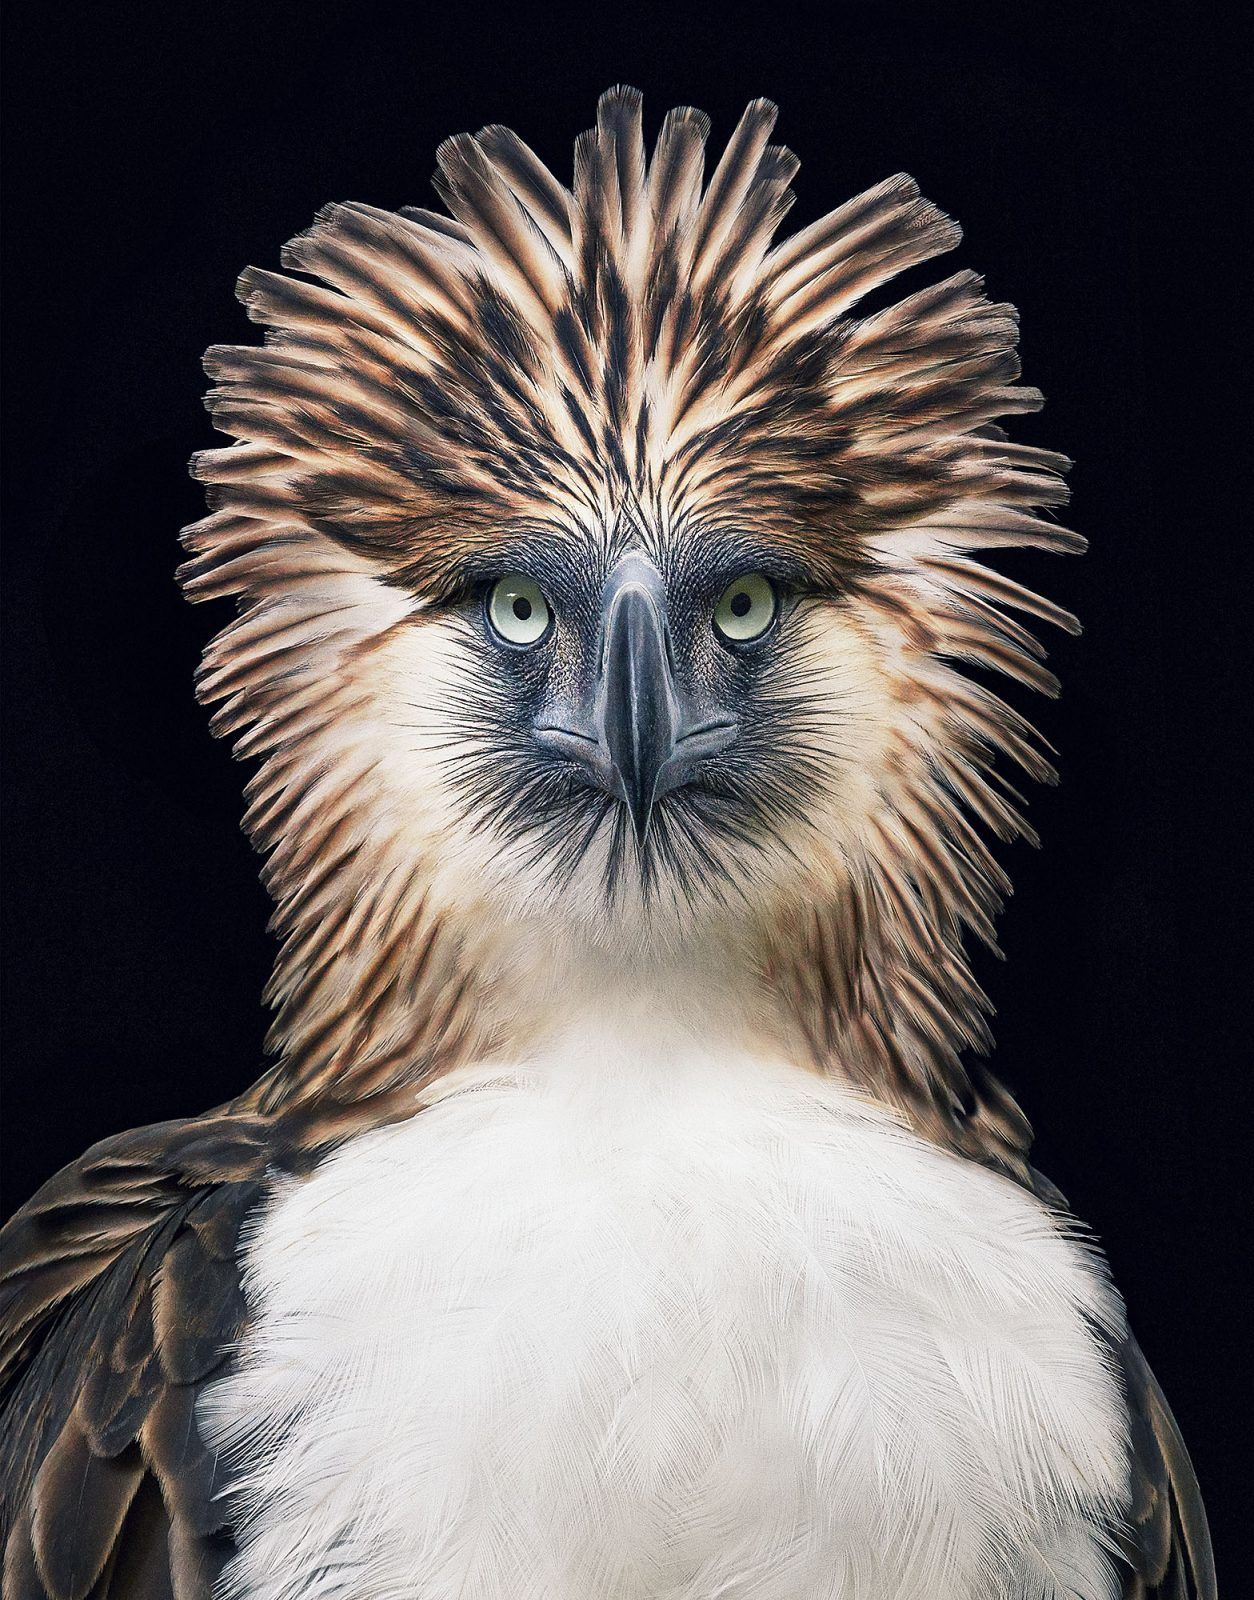 Philippine eagle. endangered Tim Flach (With images